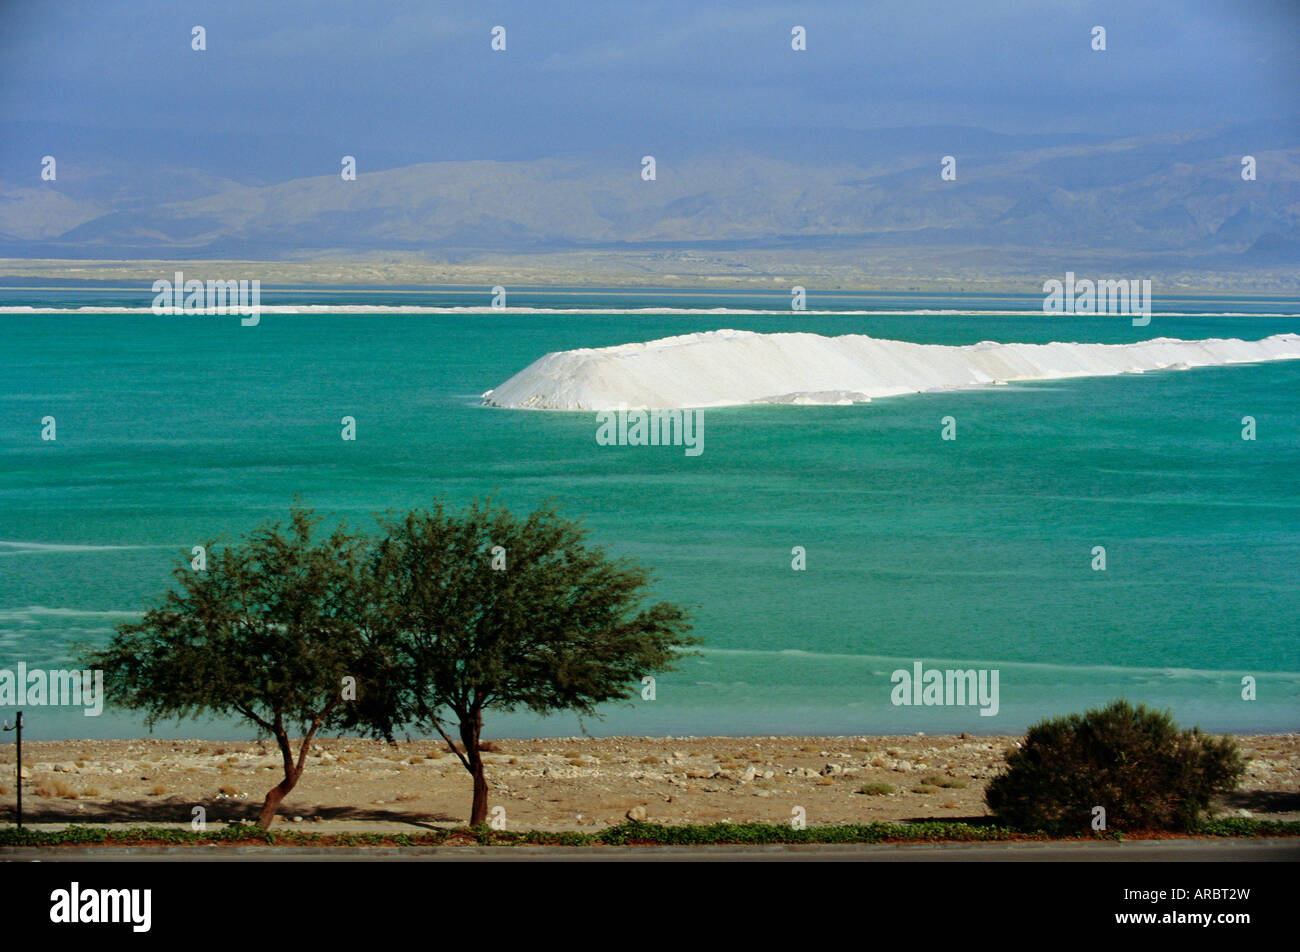 Mined sea salt at shallow south end of the Dead Sea near Ein Boqeq, Israel, Middle East - Stock Image